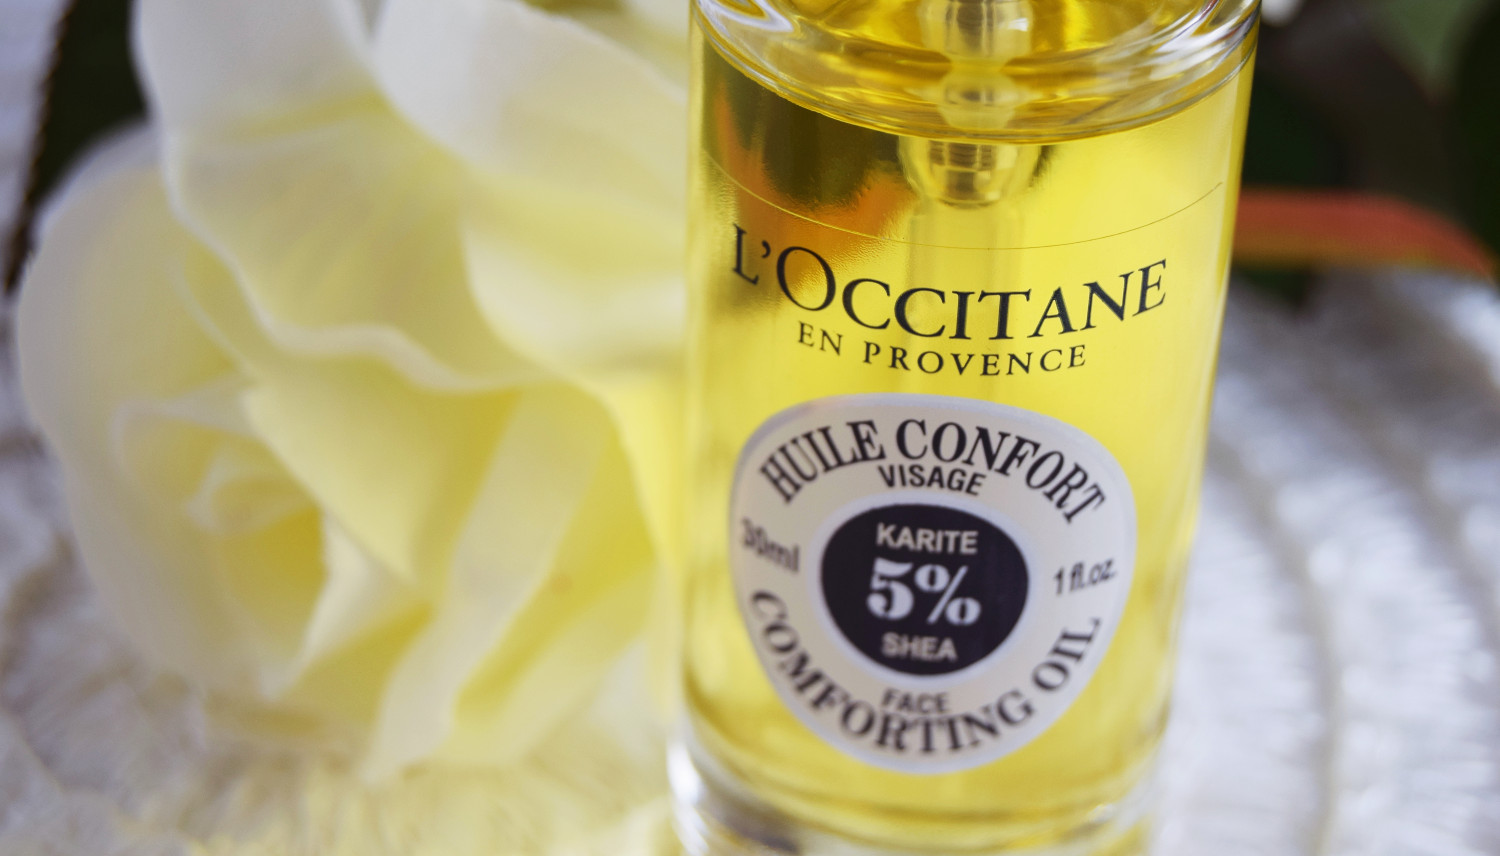 L'Occitane_face_oil_karite_shea_review_Zalabell_beauty_4